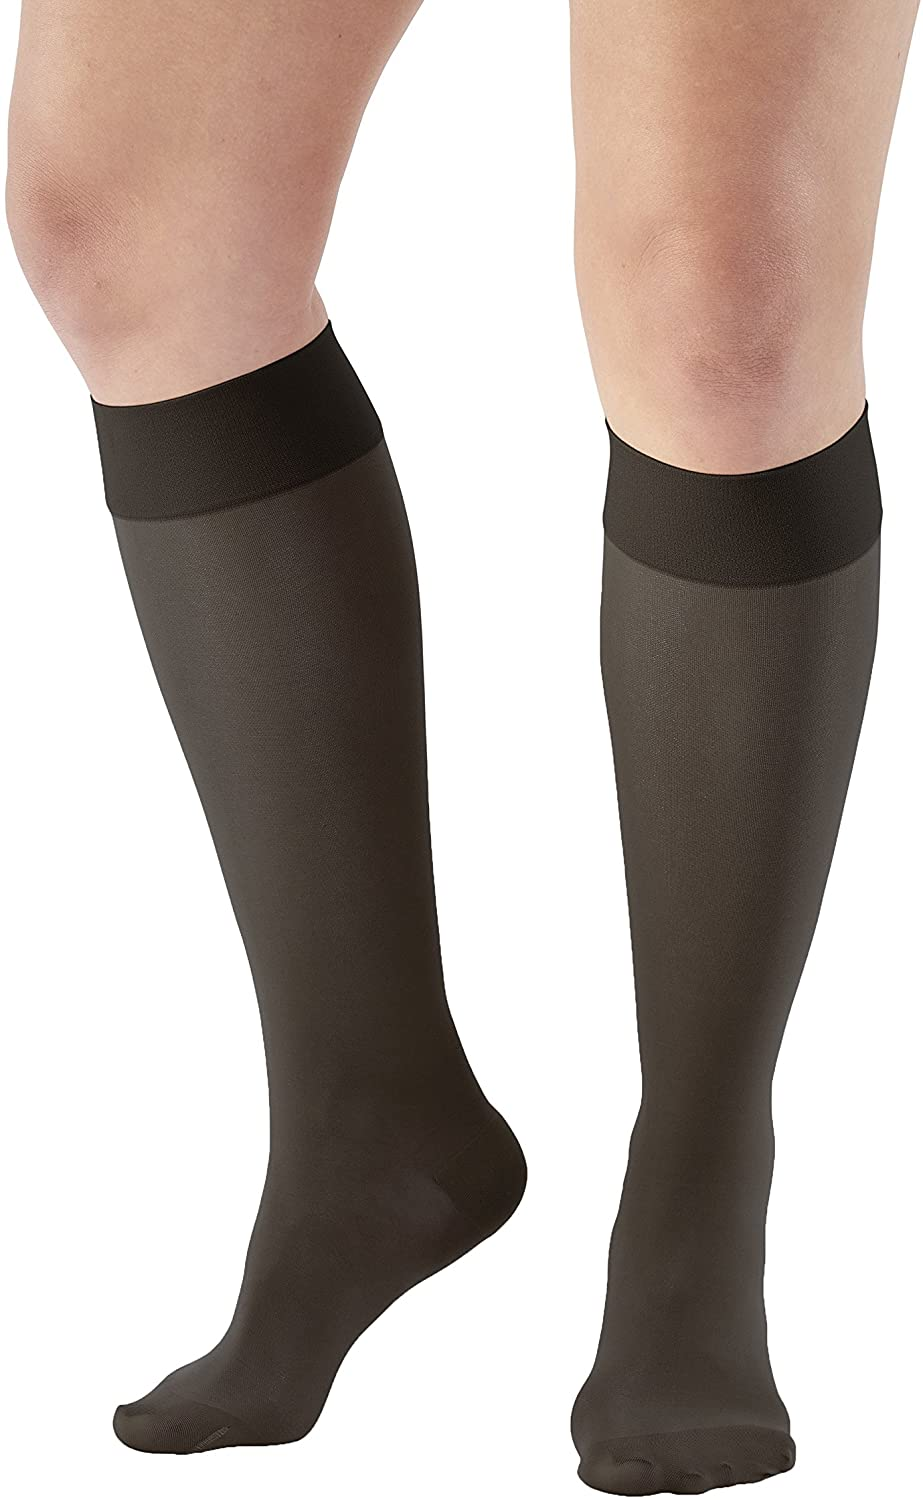 Ames Walker AW Style 235 Signature Sheers 15 20 Closed Toe Knee Highs Black XL